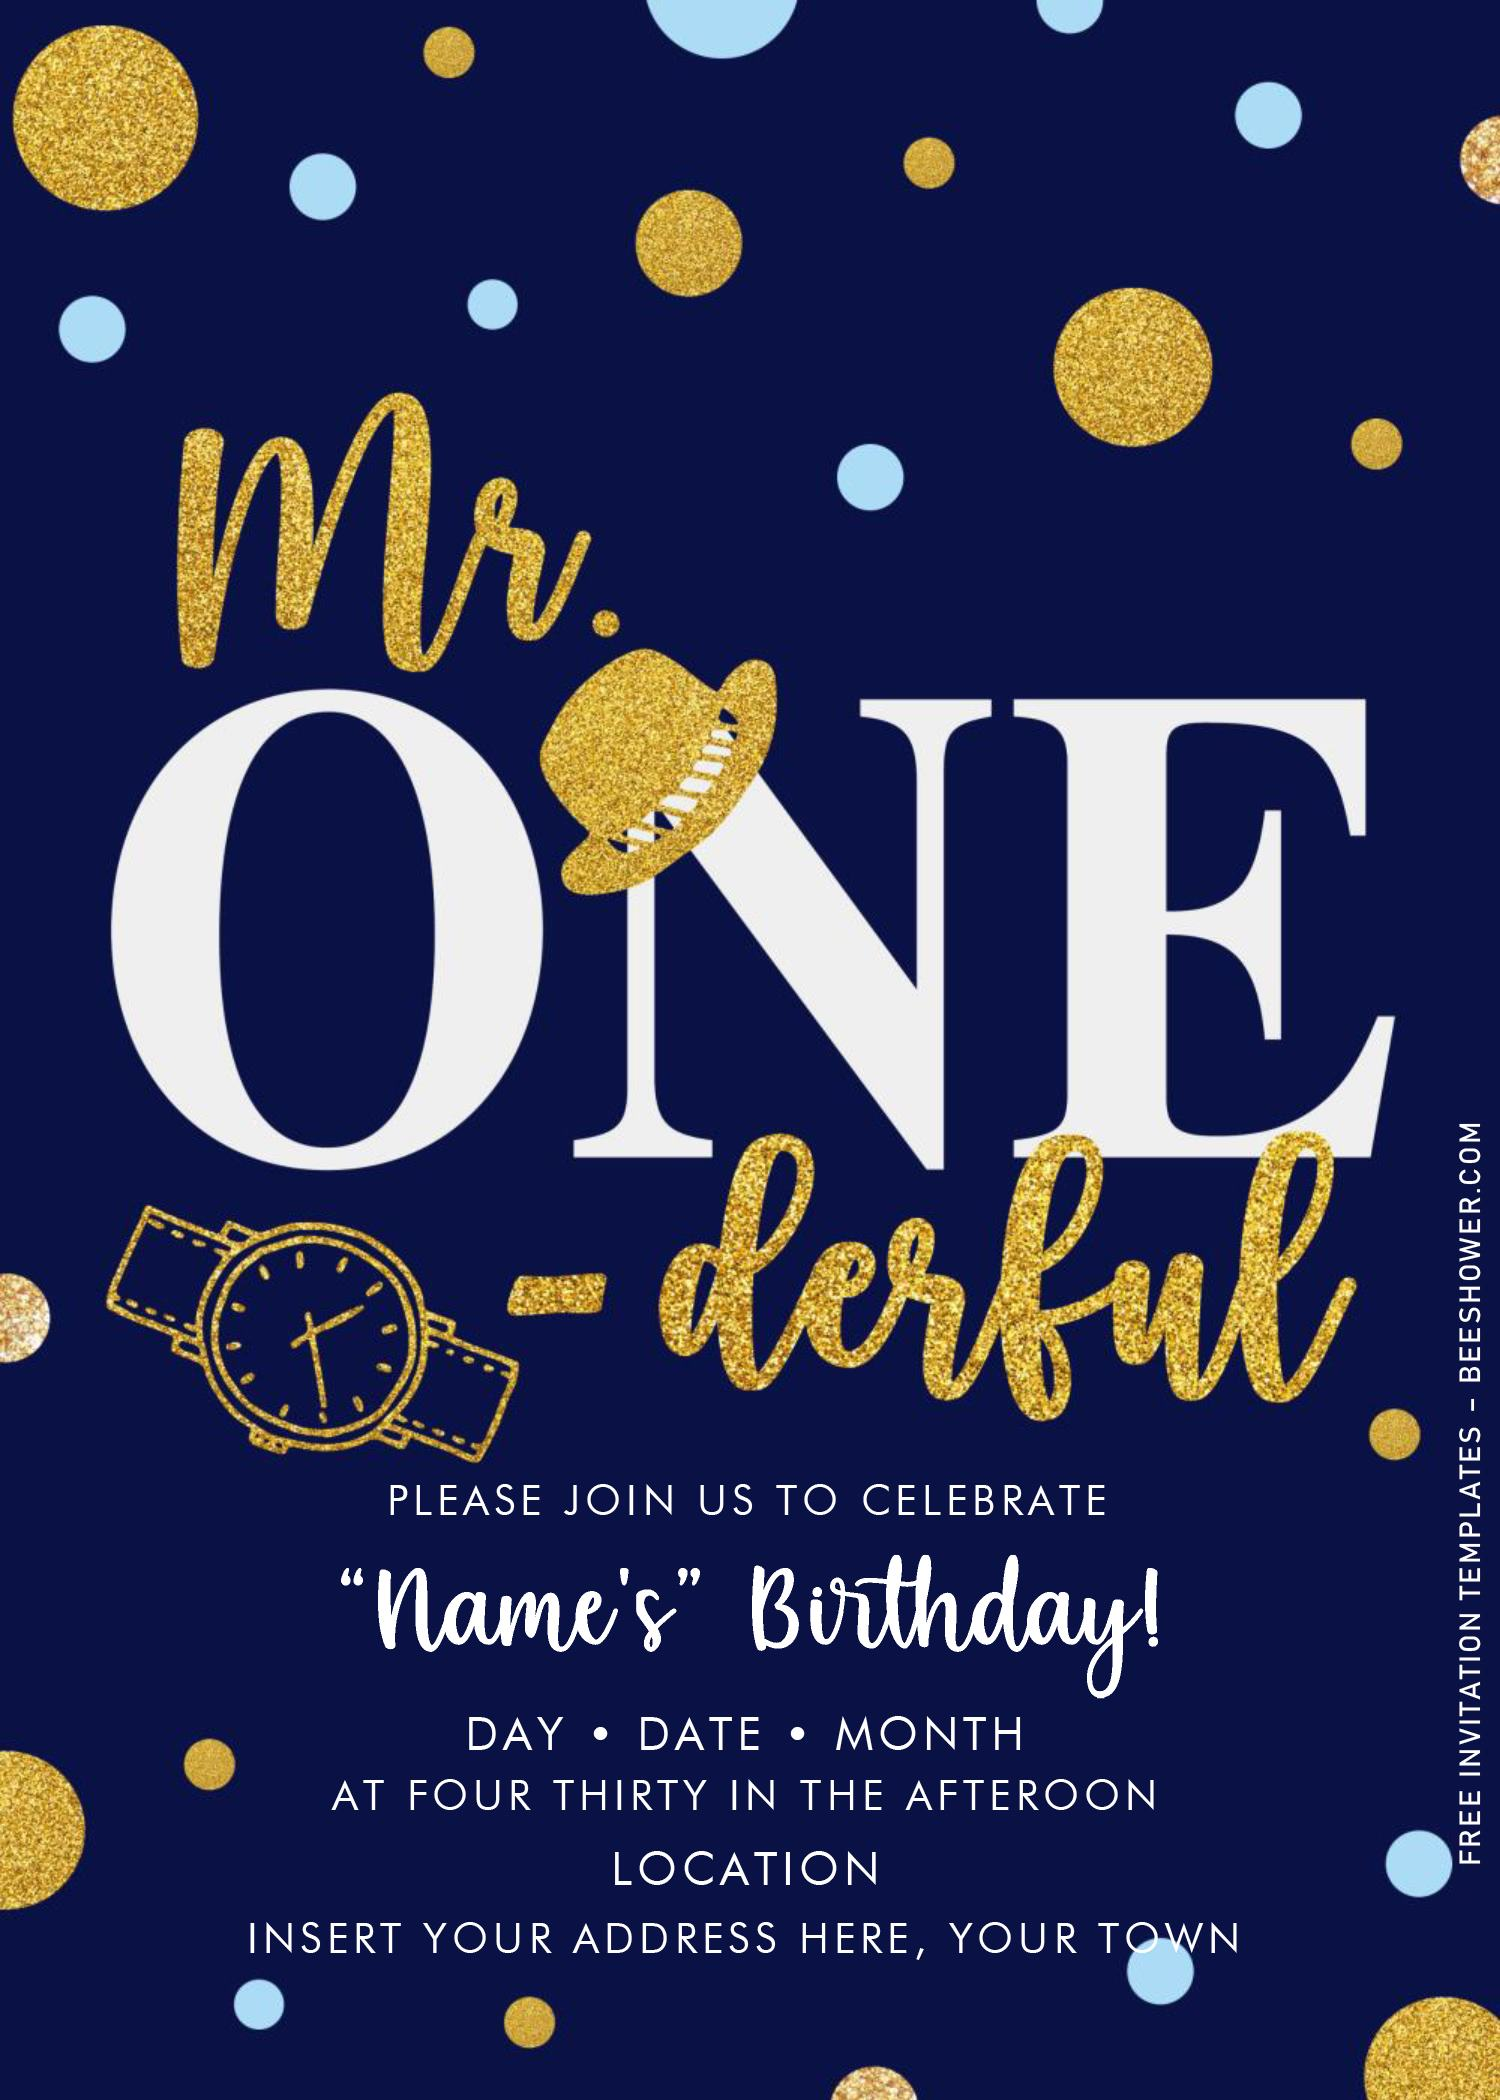 Free Mr. Onederful Birthday Invitation Templates For Word